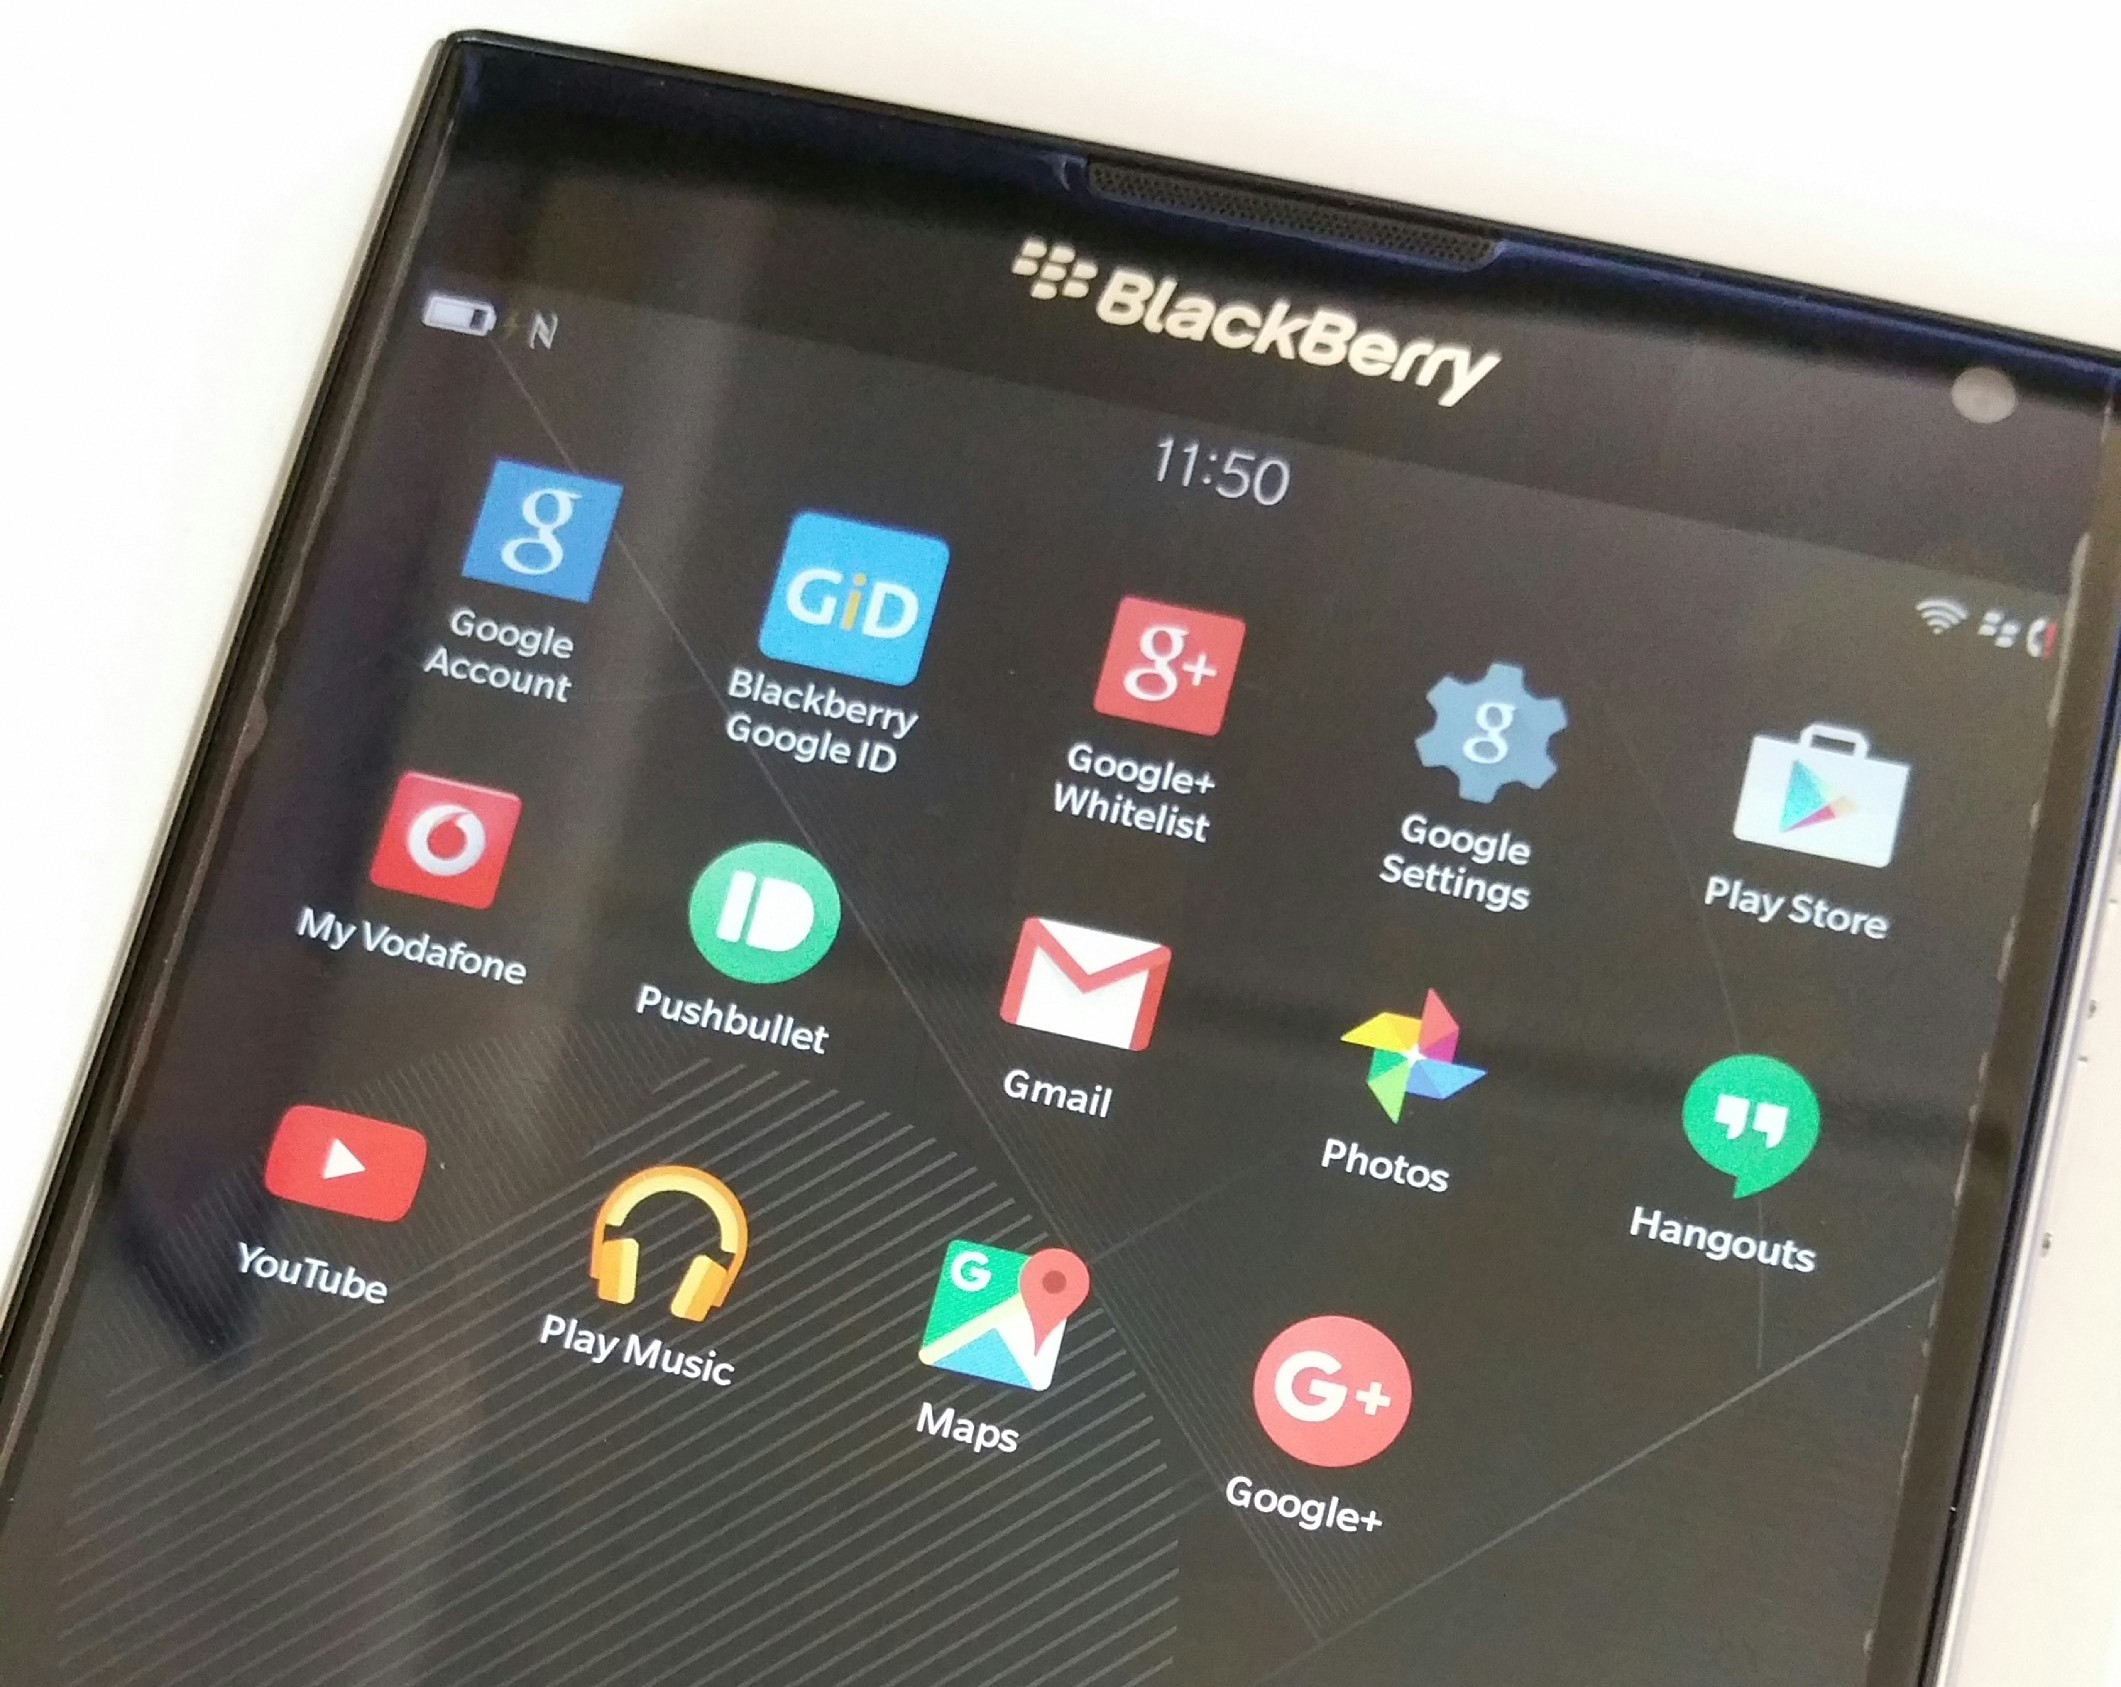 Hands on with the BlackBerry Passport | Jason Bayton